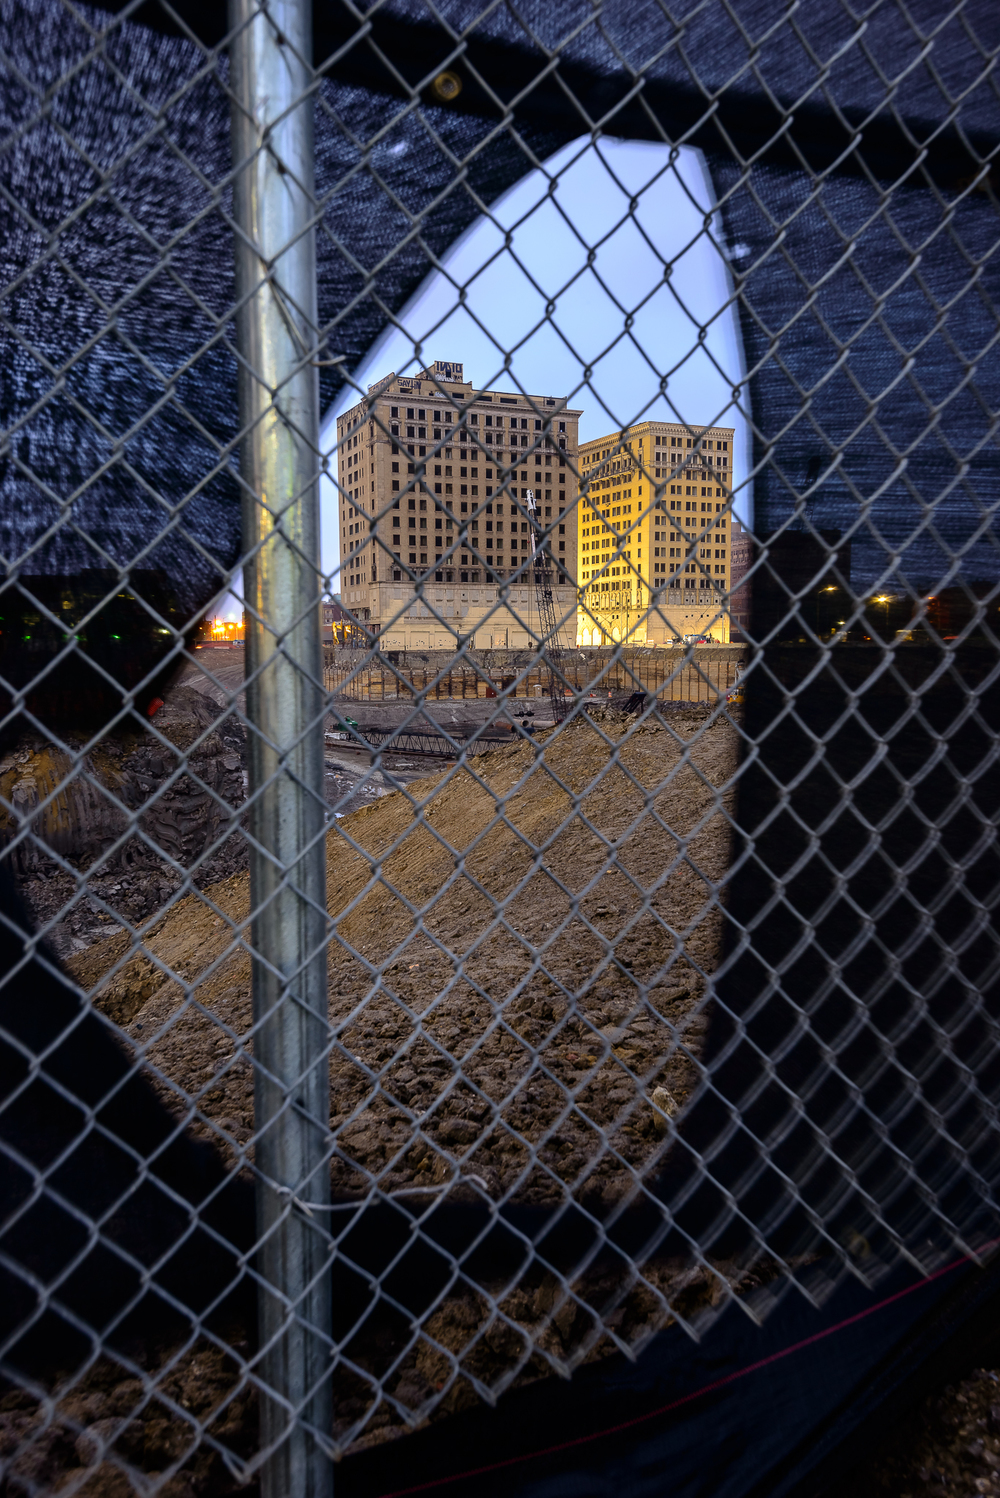 7/7/15.  The Red Wings are getting a new arena, but not before some historical buildings are given the boot.  The Hotel Park Ave (left) just days before implosion.